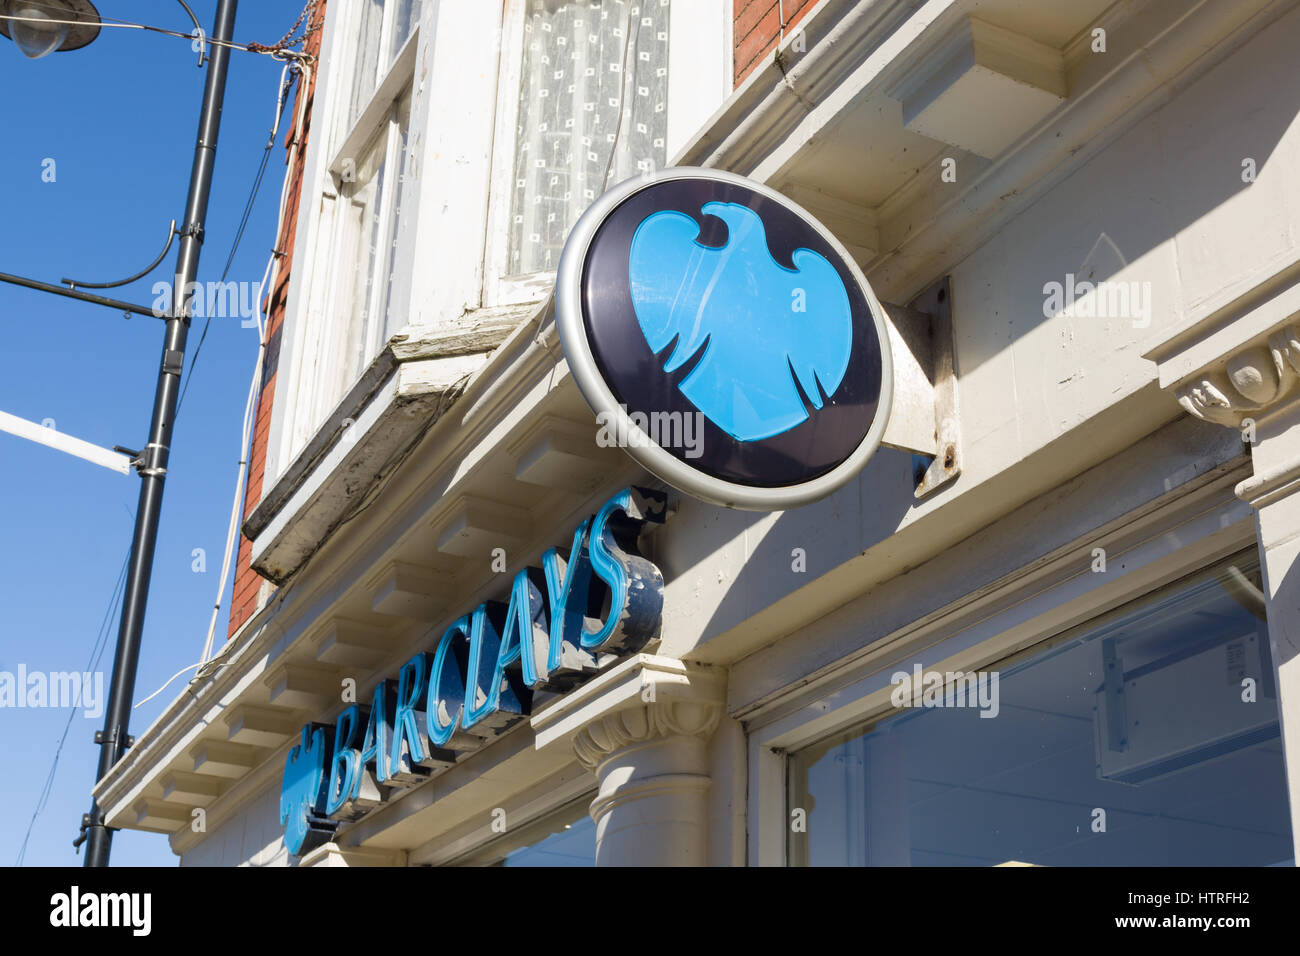 Barclays Bank sign on the branch in Llangollen Denbighshire, one of the few remaining banks maintaining a presence - Stock Image